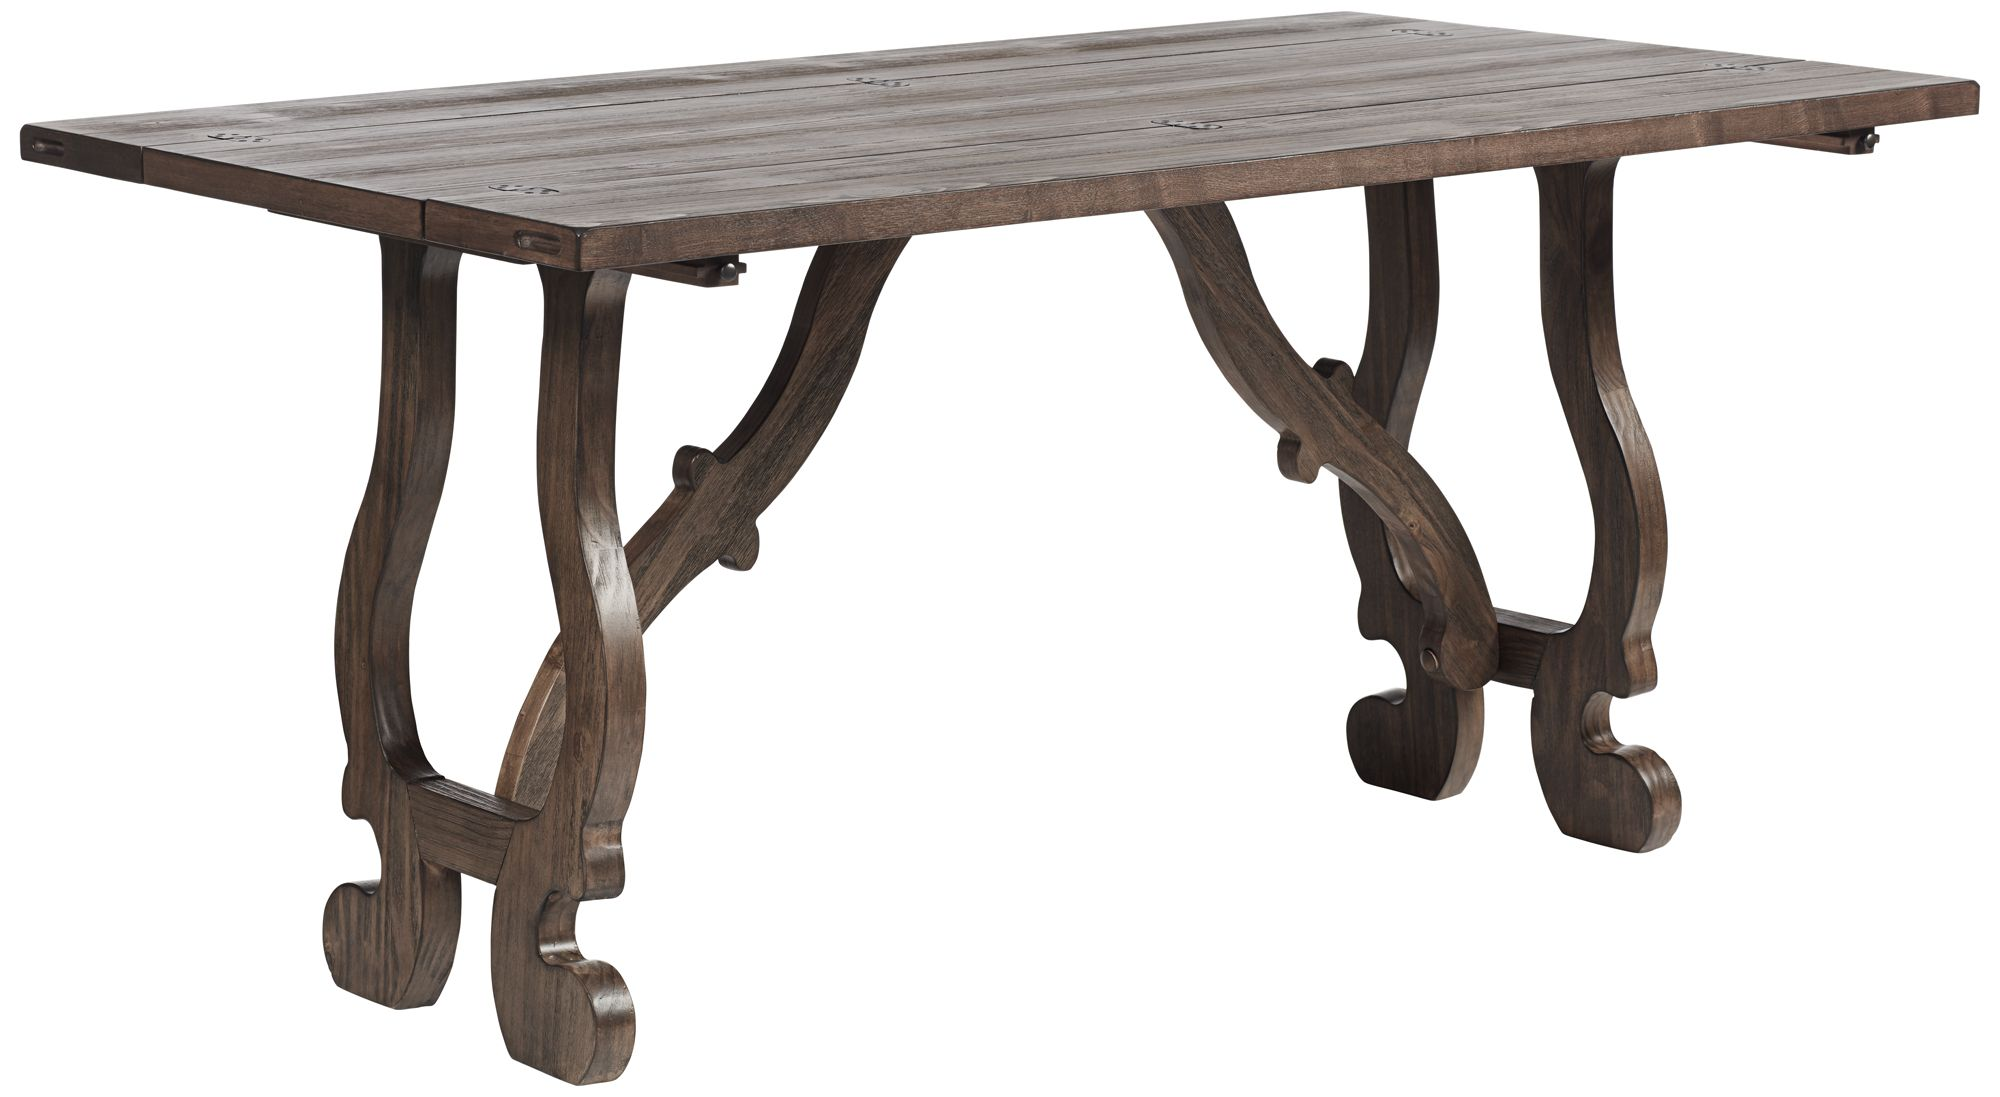 sofa console tables wood cane sofas bangalore coast to lamps plus canada orchard brown pine foldout table